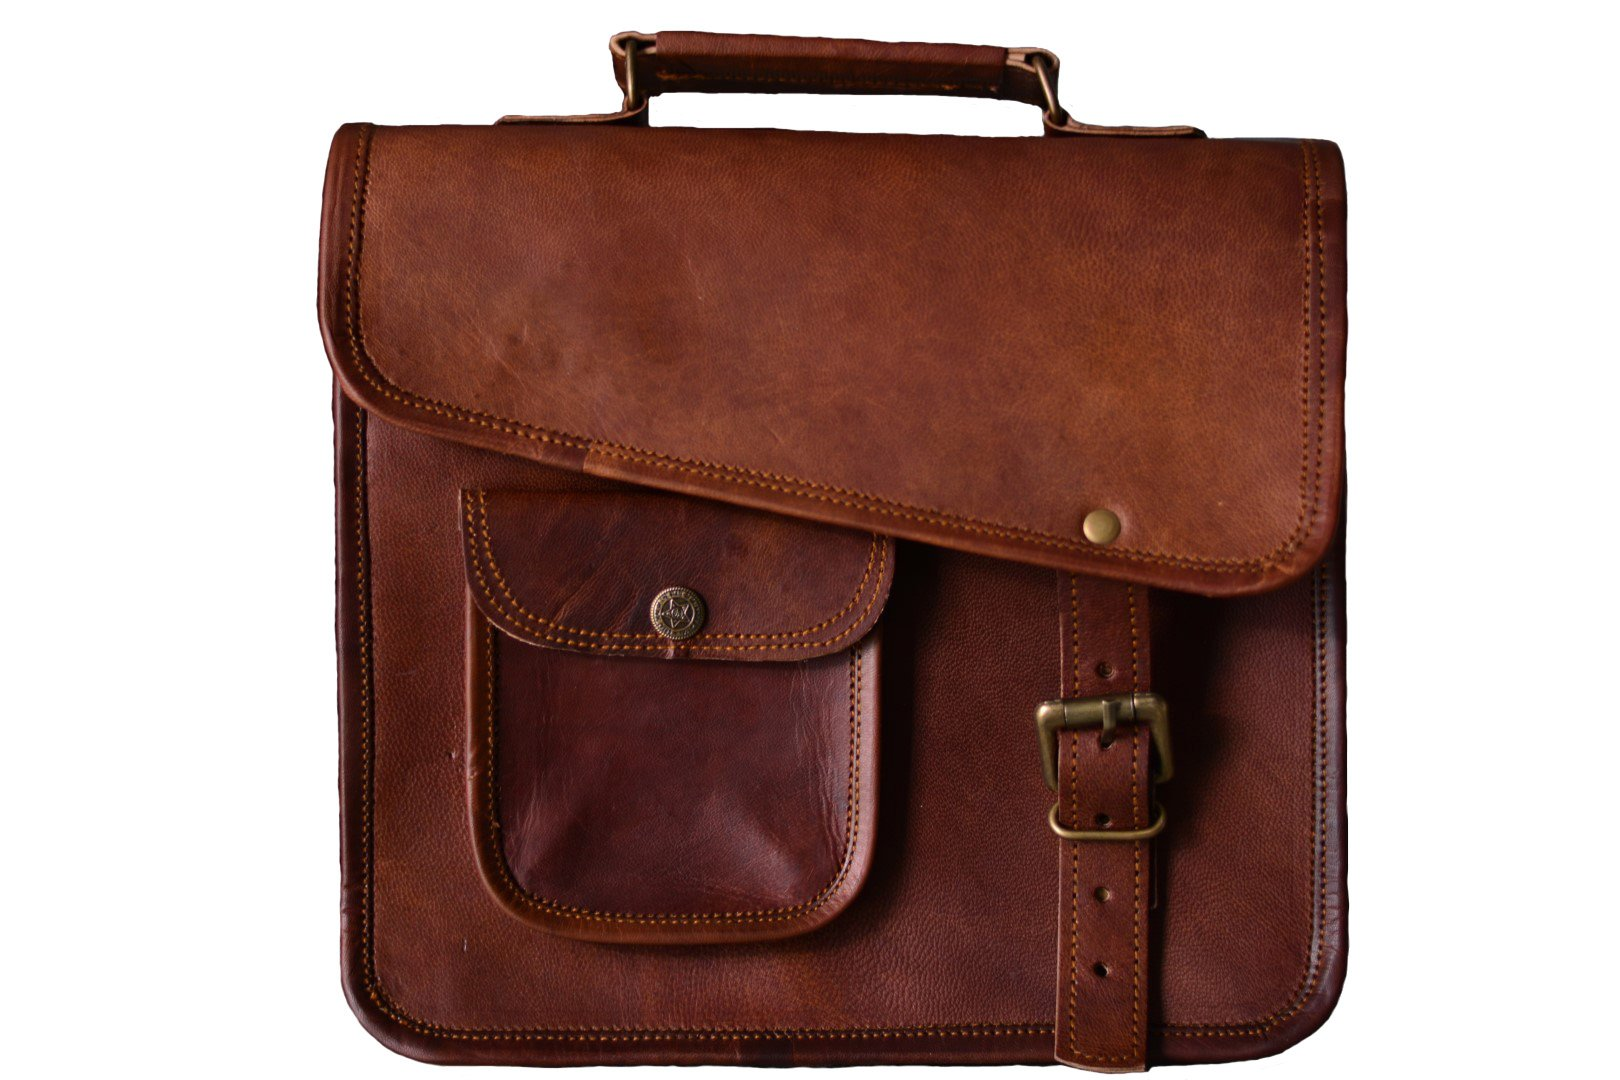 c44881507fb7 Urban Dezire Men s Genuine Leather Small Briefcase Messenger Satchel Ipad  Tab Tablet Bag 11 Compatible with